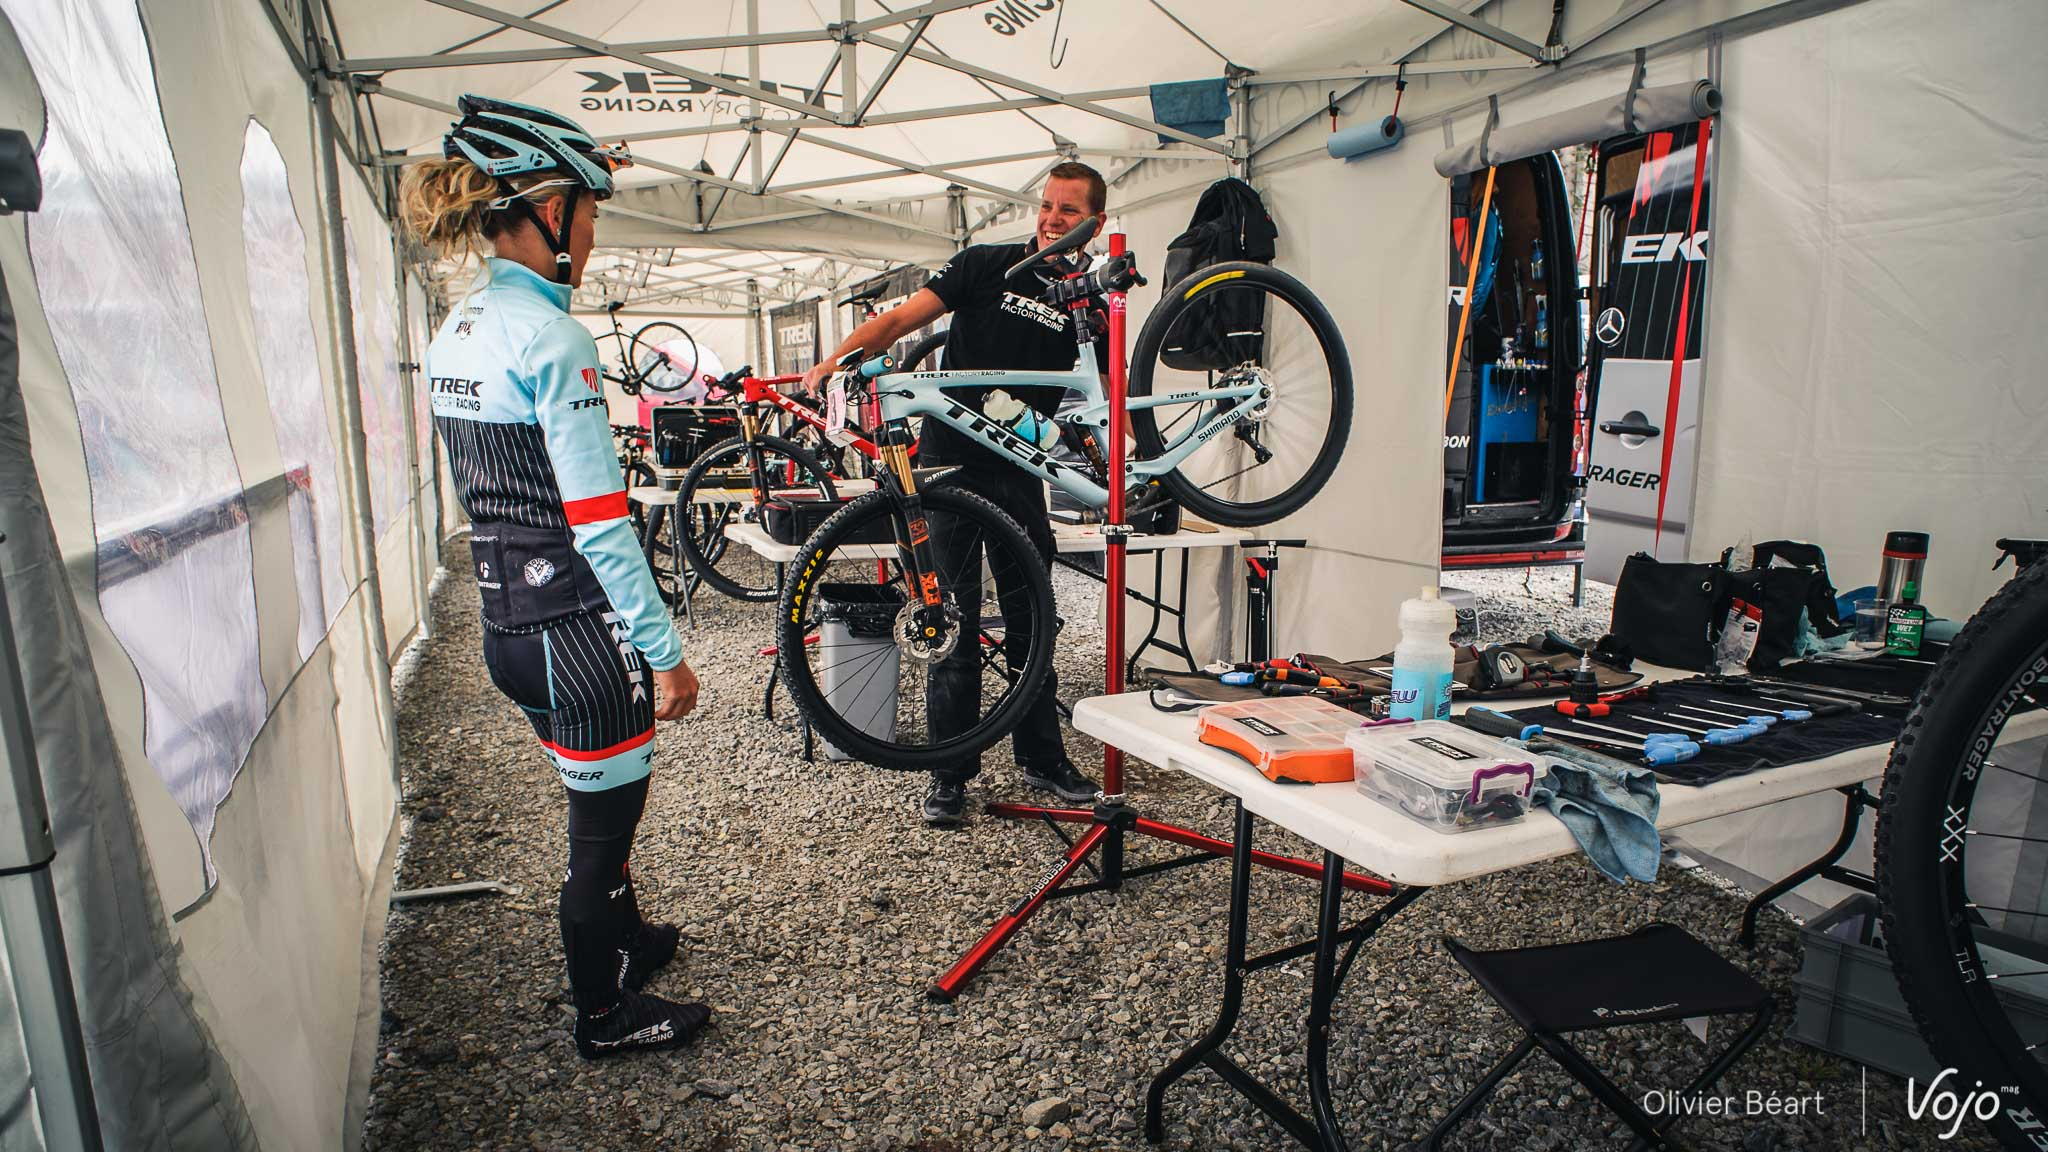 World_Cup_MTB_Pro_Bike_Check_Emily_Batty_Trek_Top_Fuel_Copyright_OBeart_VojoMag-1